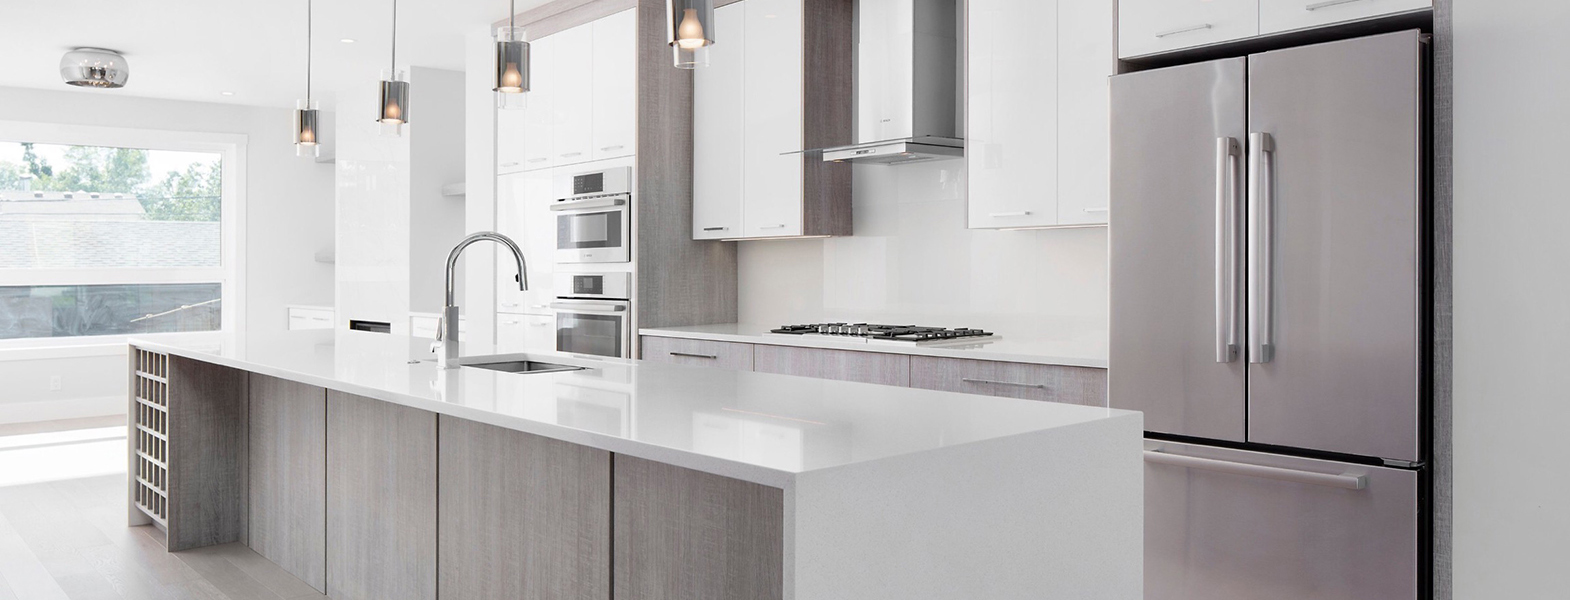 Cabinet Doors Materials Styles Fronts Handles Hinges Installation And Final Cost In Canada